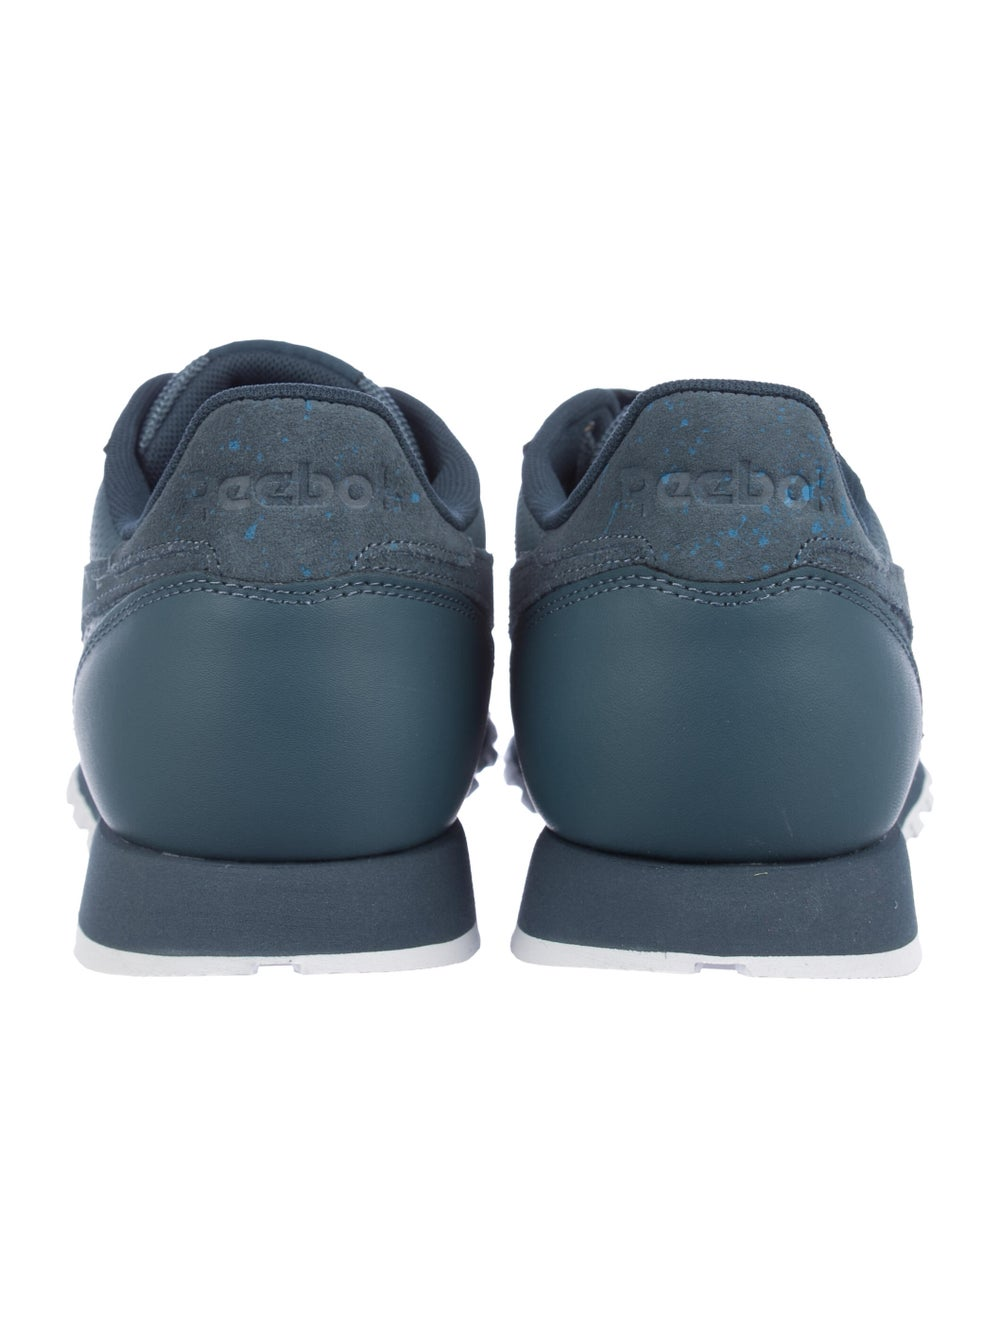 Reebok Classic Leather Sneakers w/ Tags - image 4